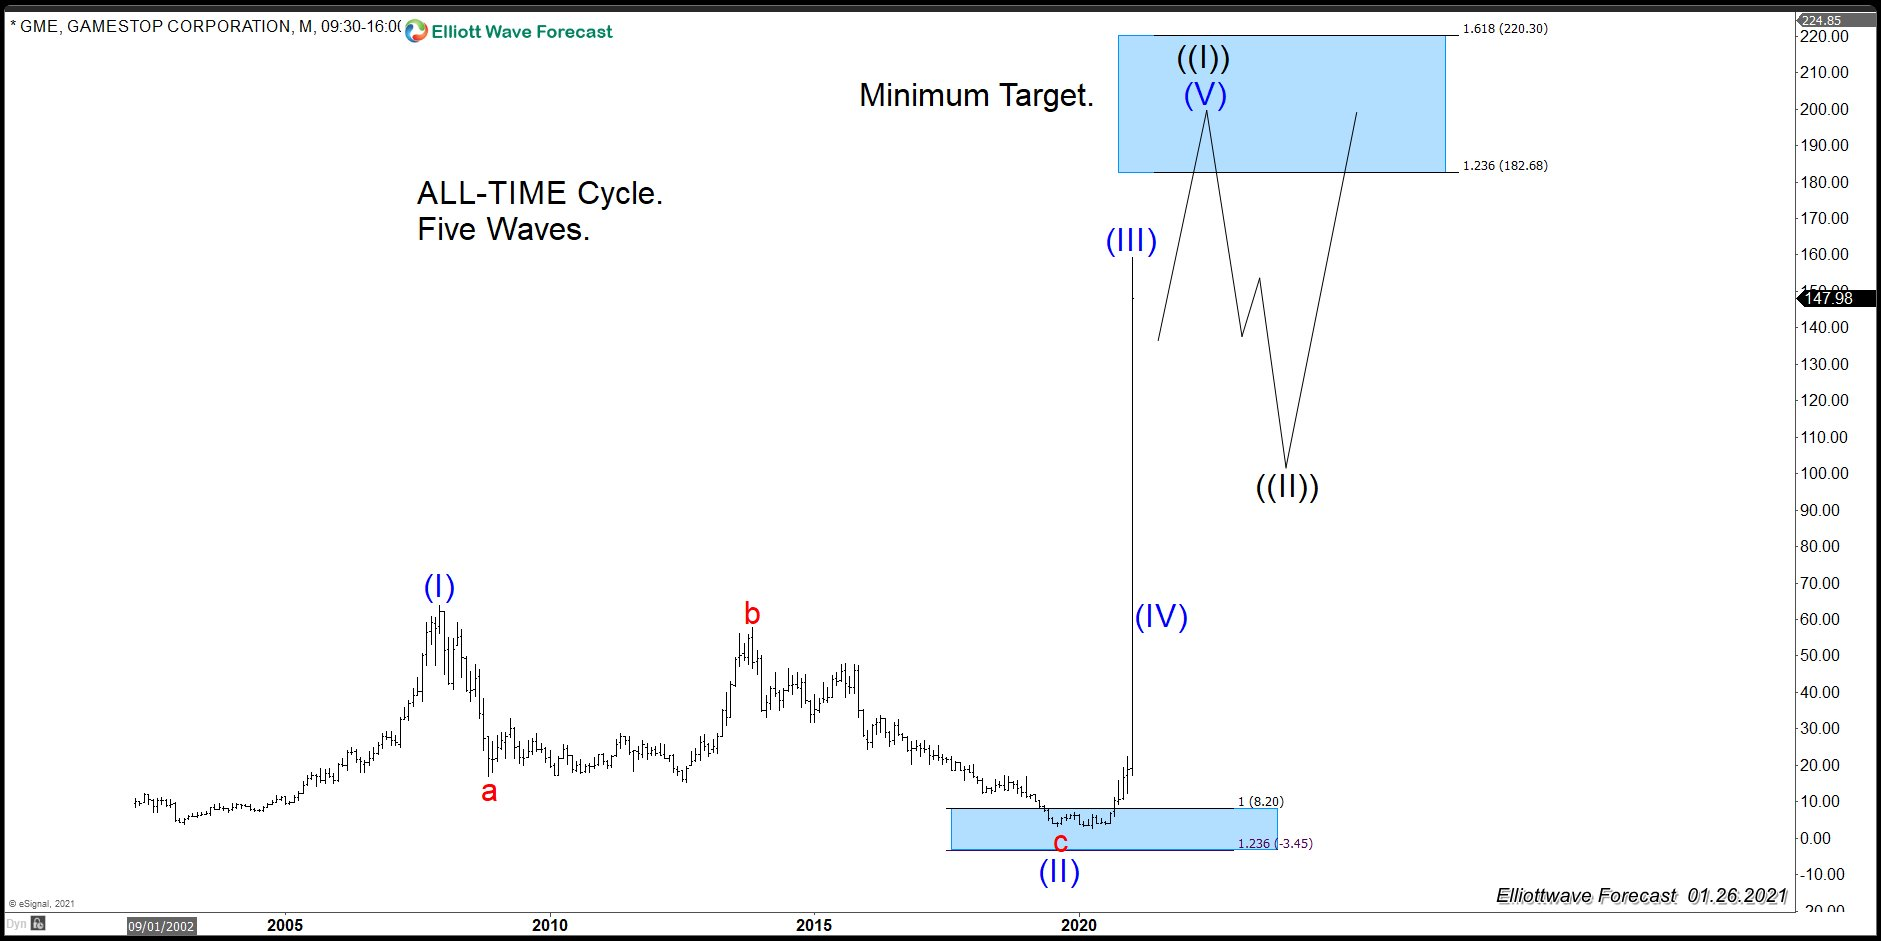 GME: A Wave (V) Might Happen with Minimum Target $182.00